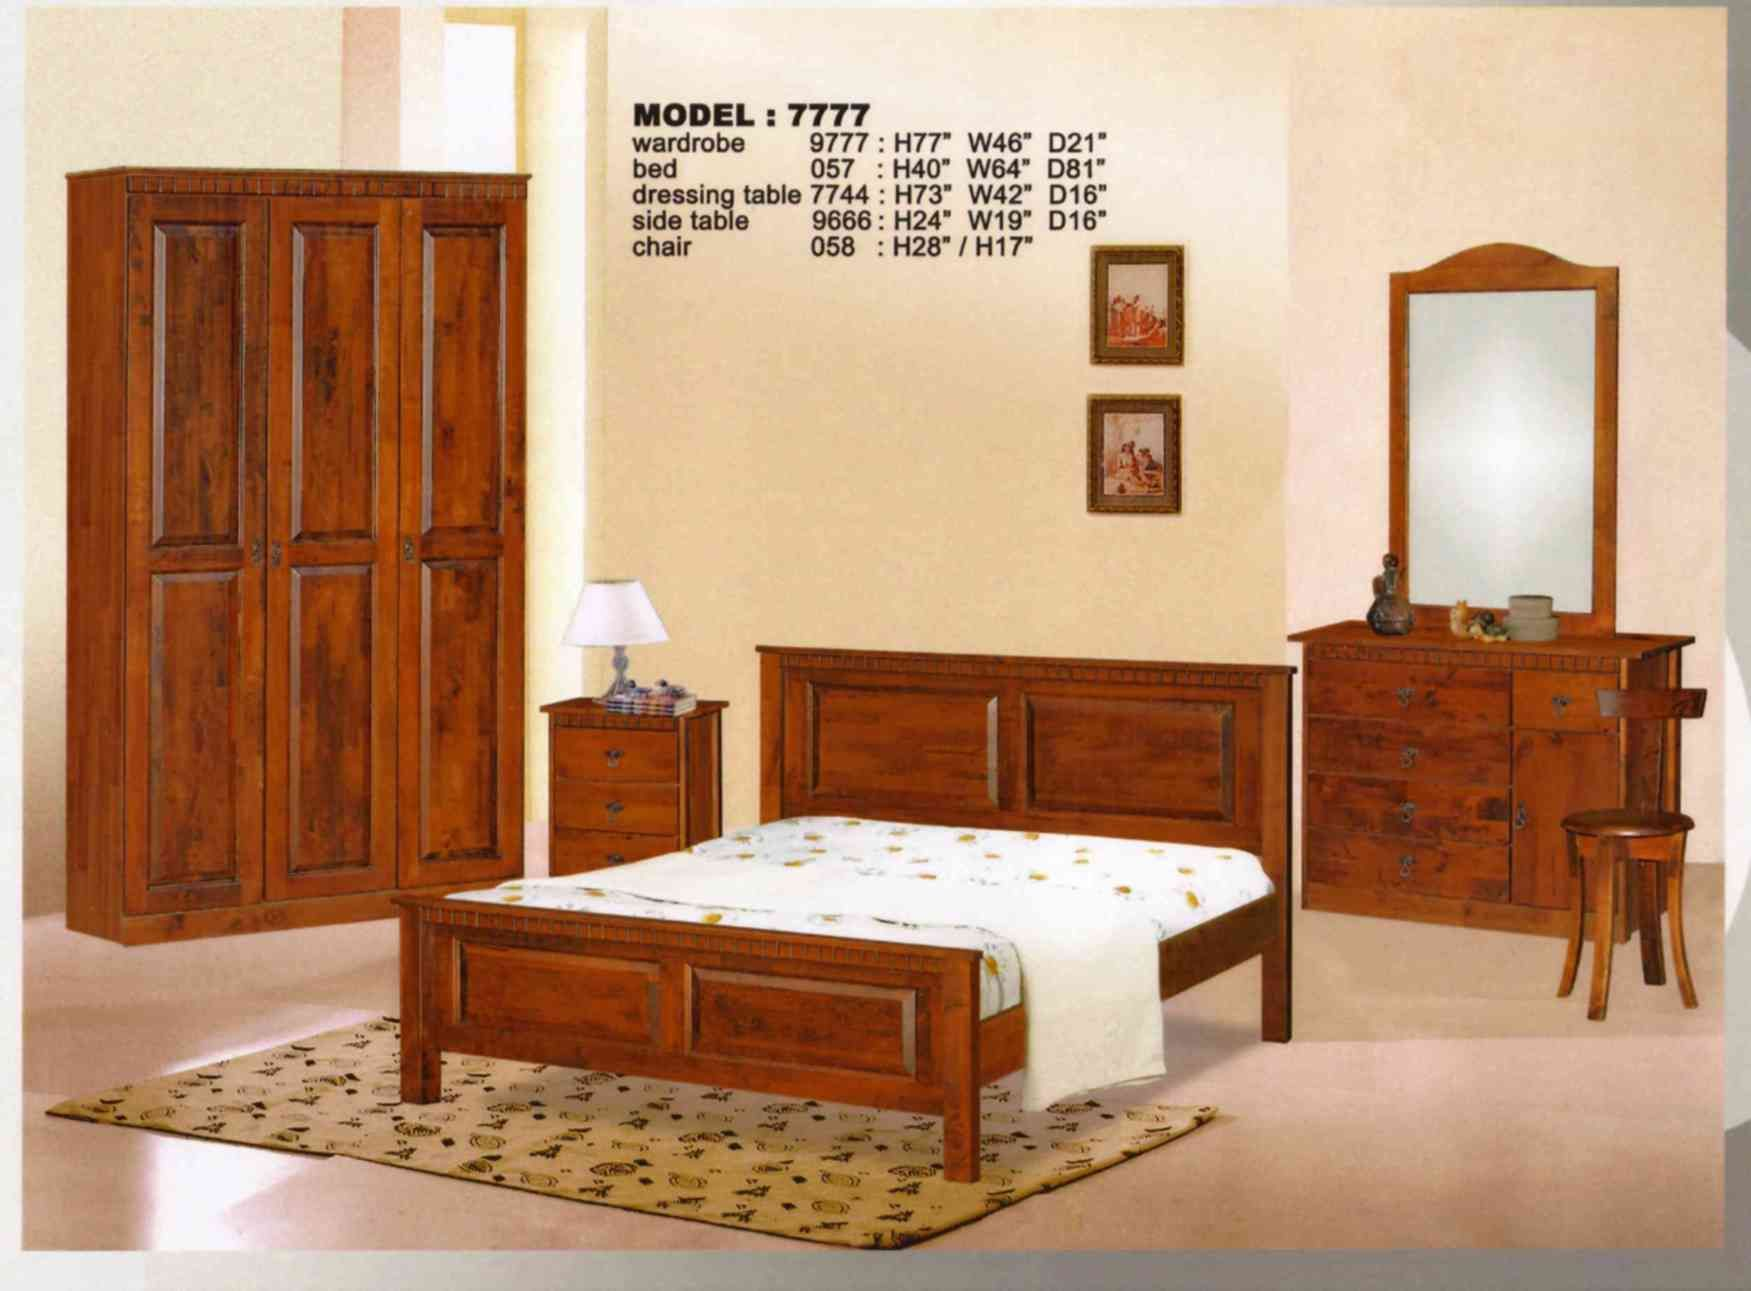 Mdf Bedroom Furniture Set Decoration Alluring Double Bed Furniture Buy Design Modern Mdf Board Bedroom Sets Raya . Review